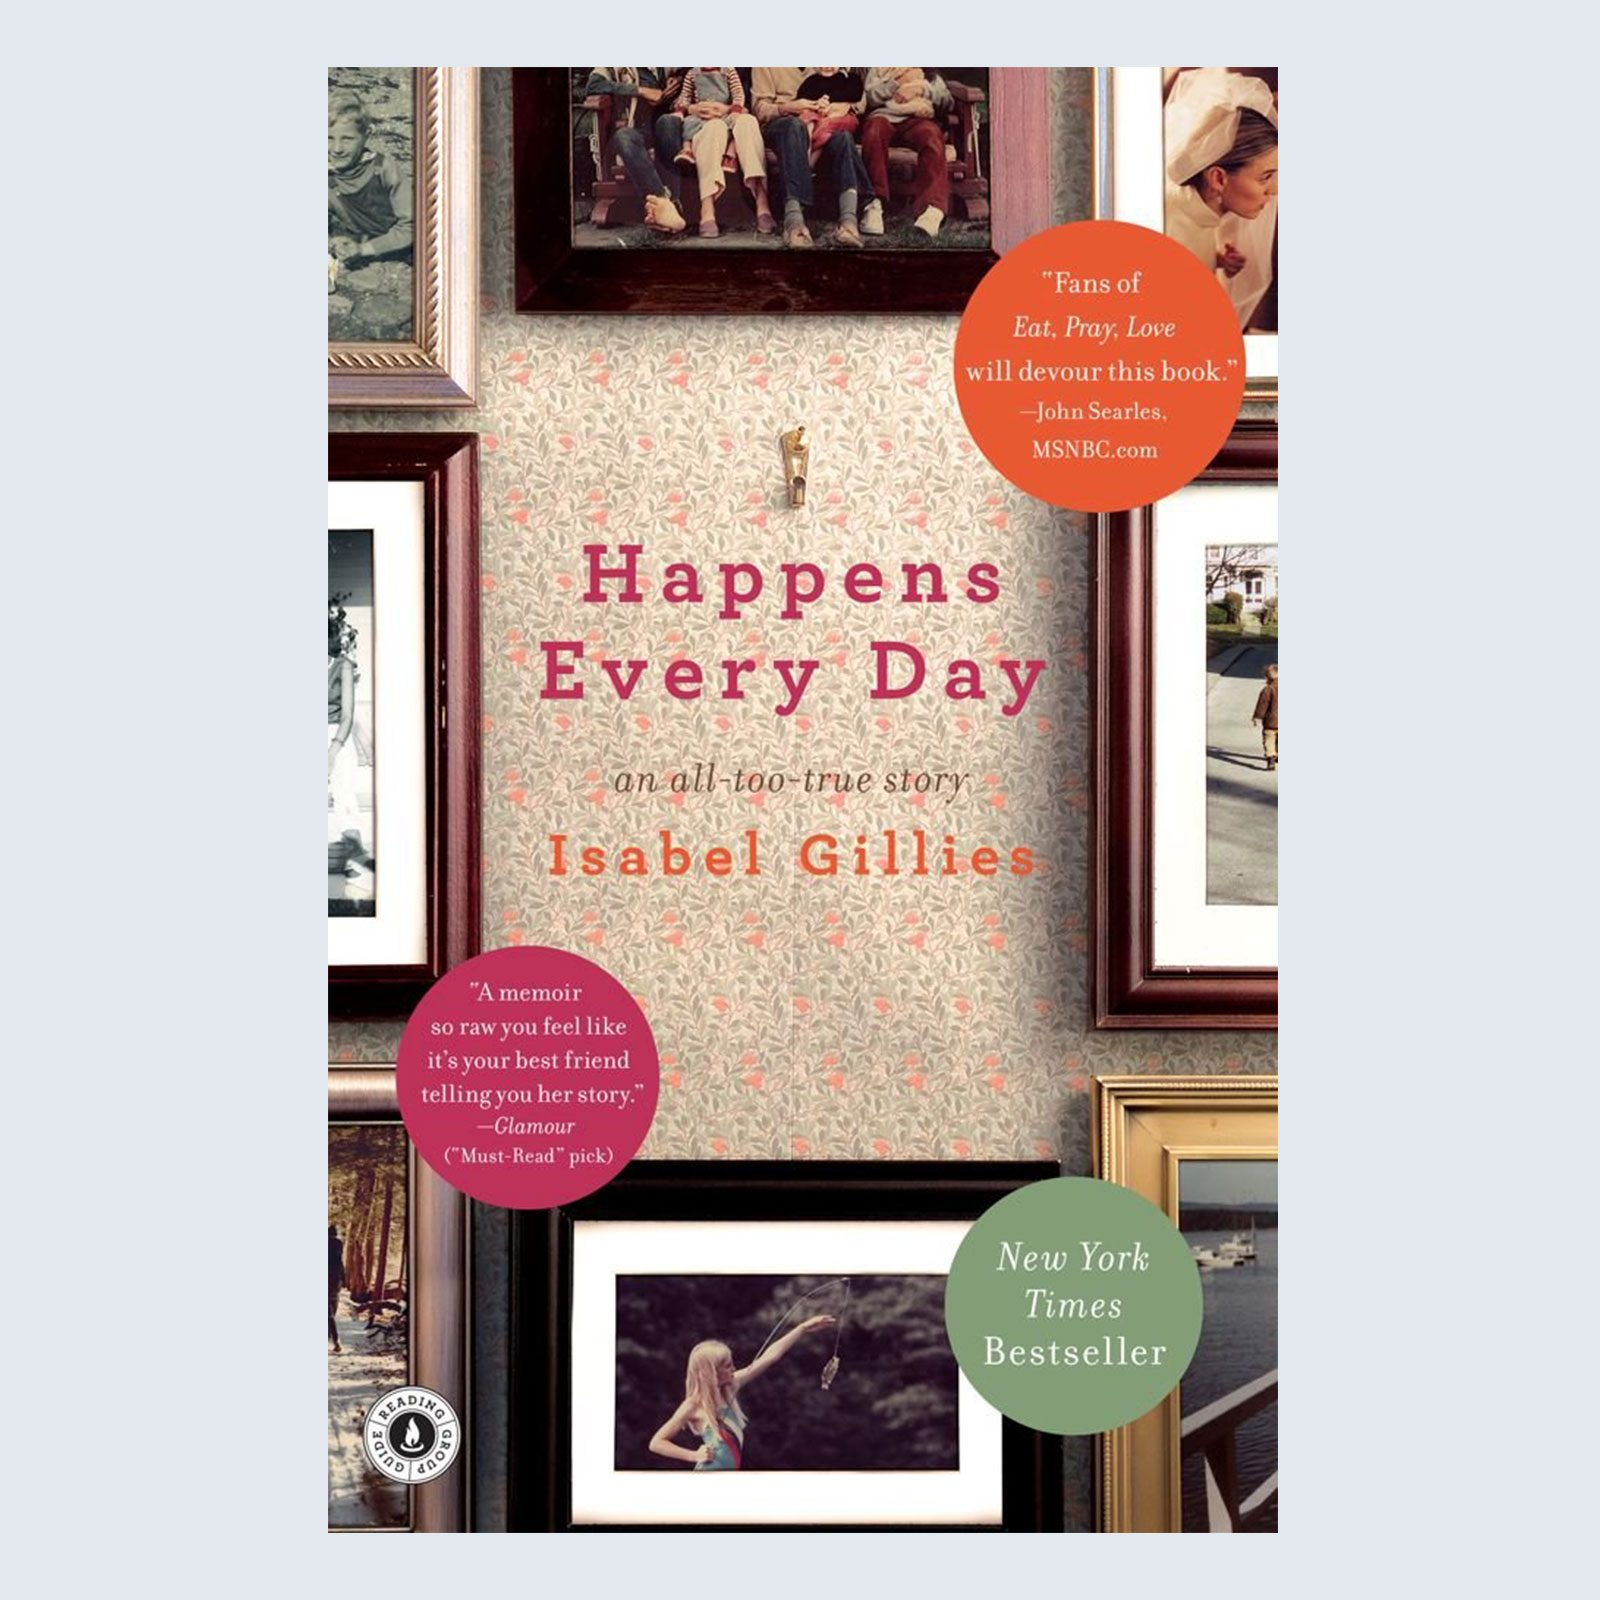 Happens Every Day byIsabel Gillies